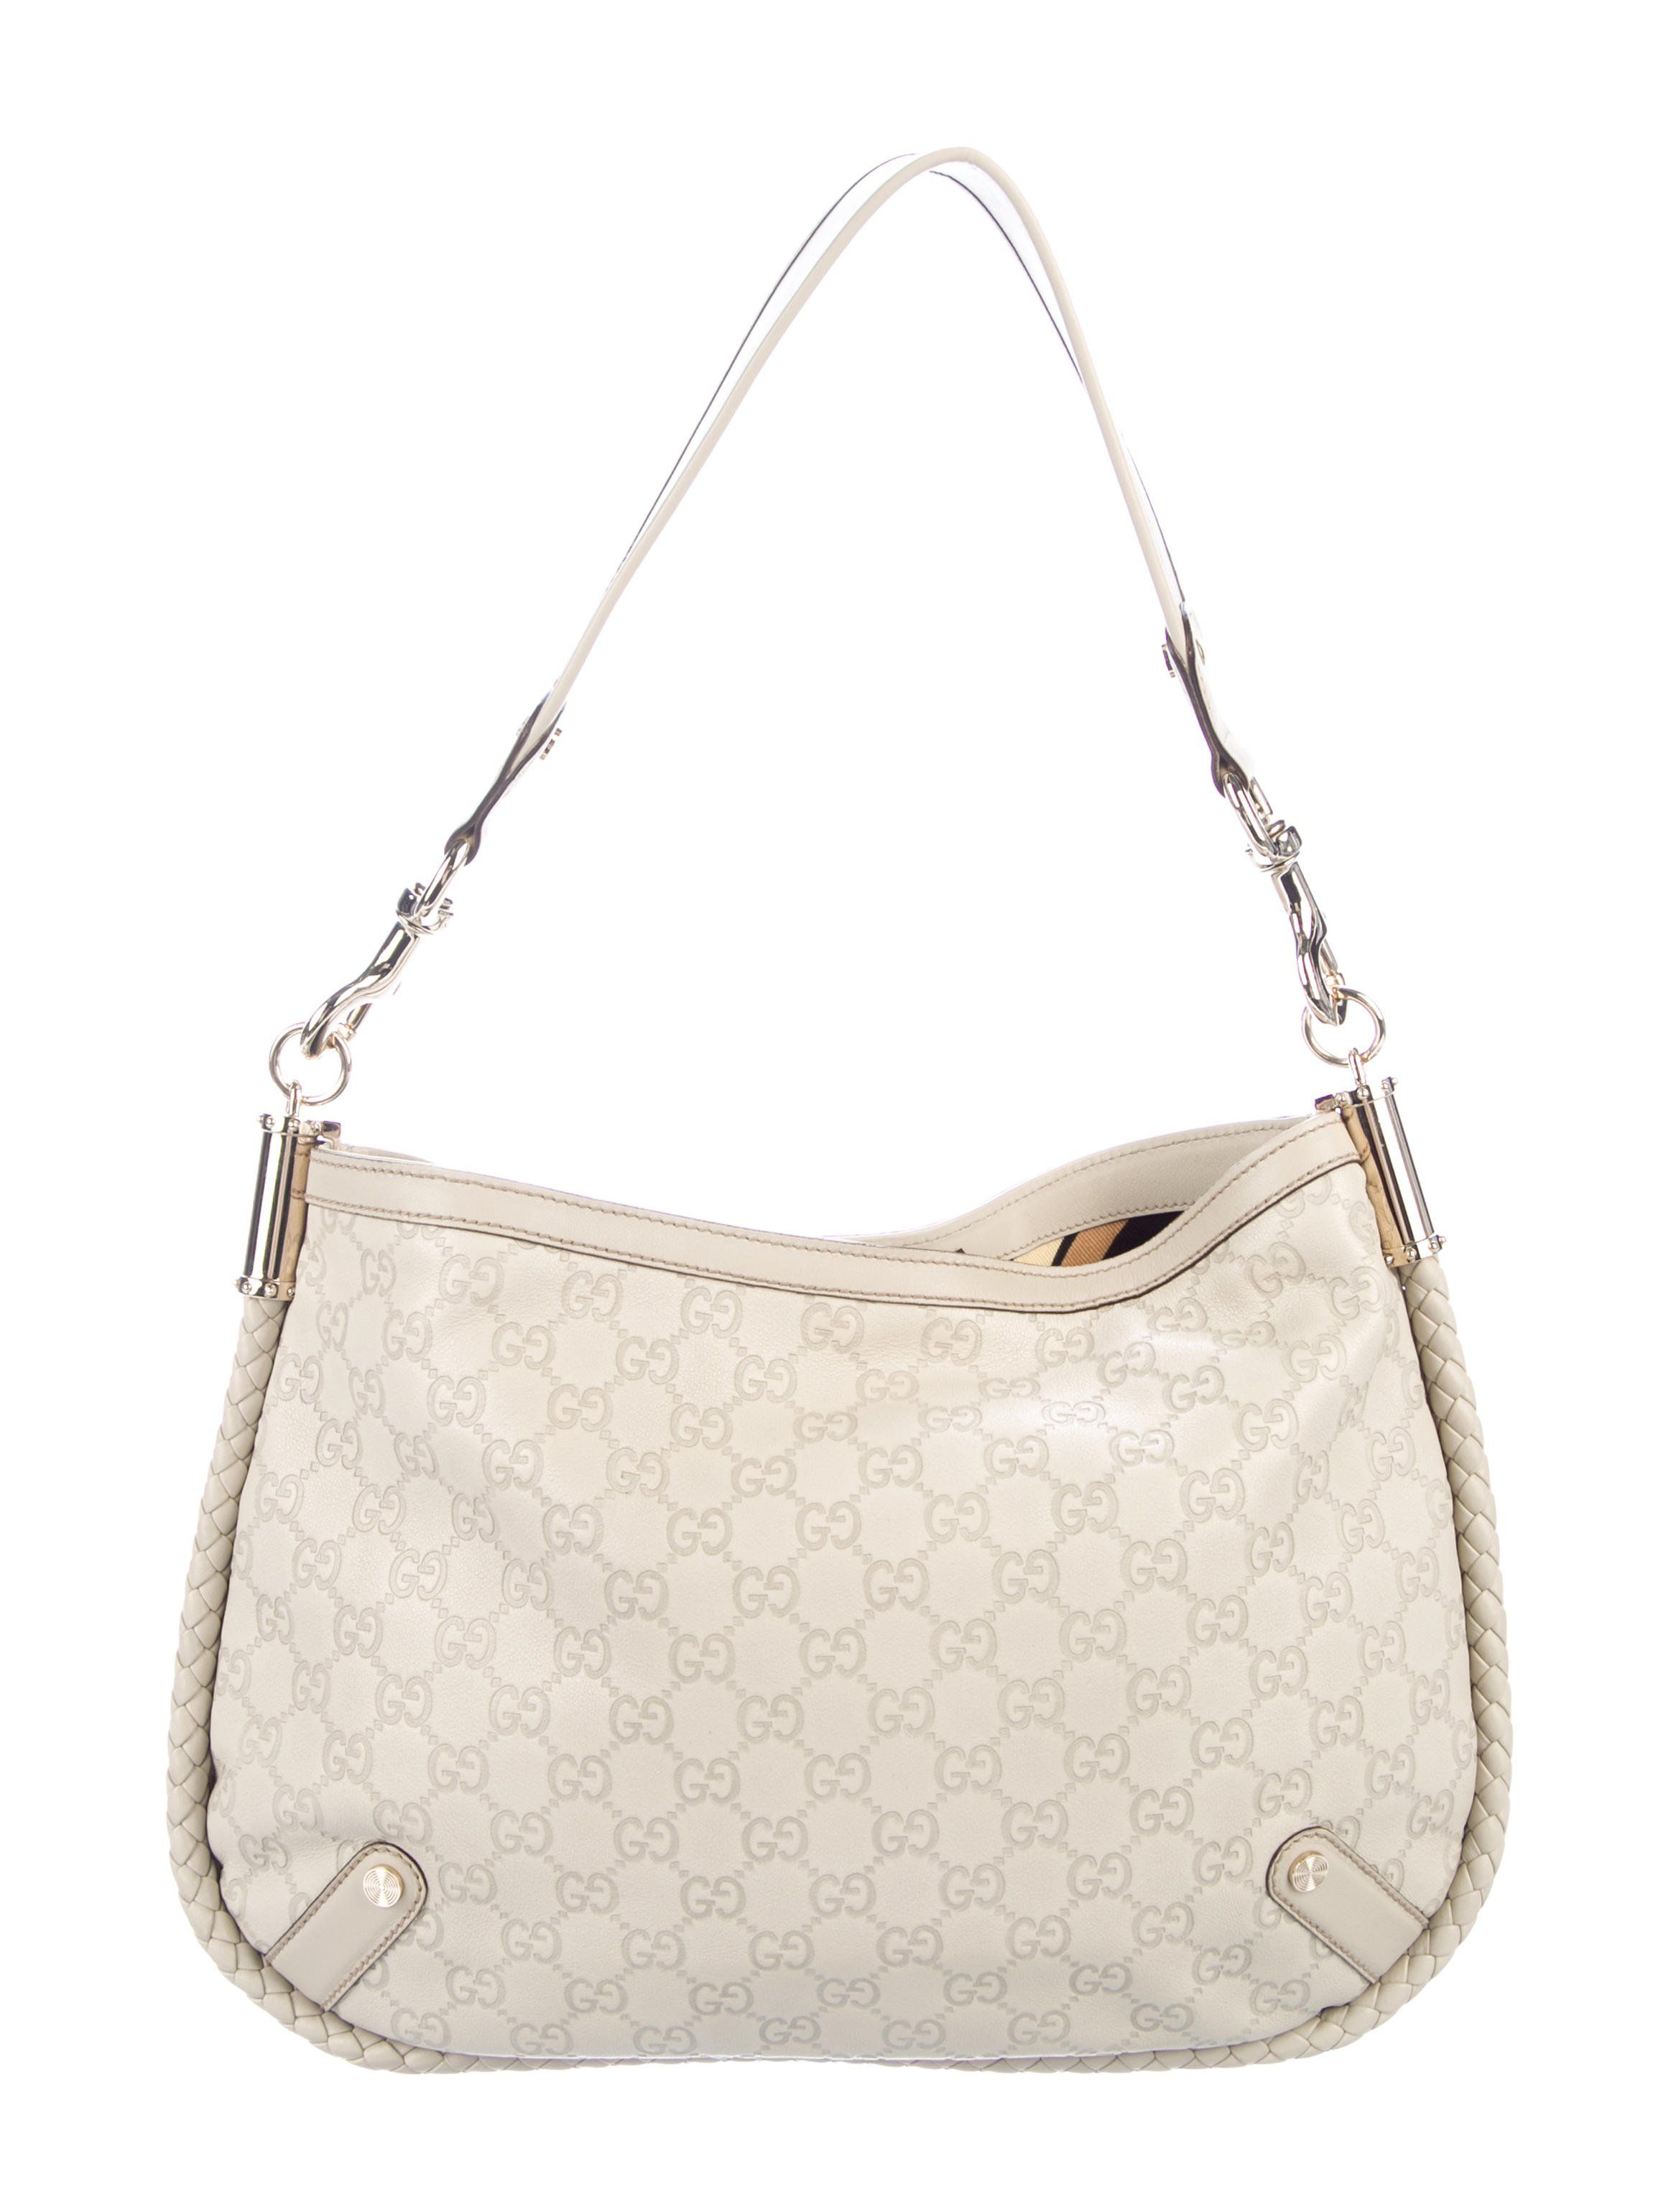 8af8f03209b Creme Guccissima leather Gucci Medium Britt hobo with gold-tone hardware